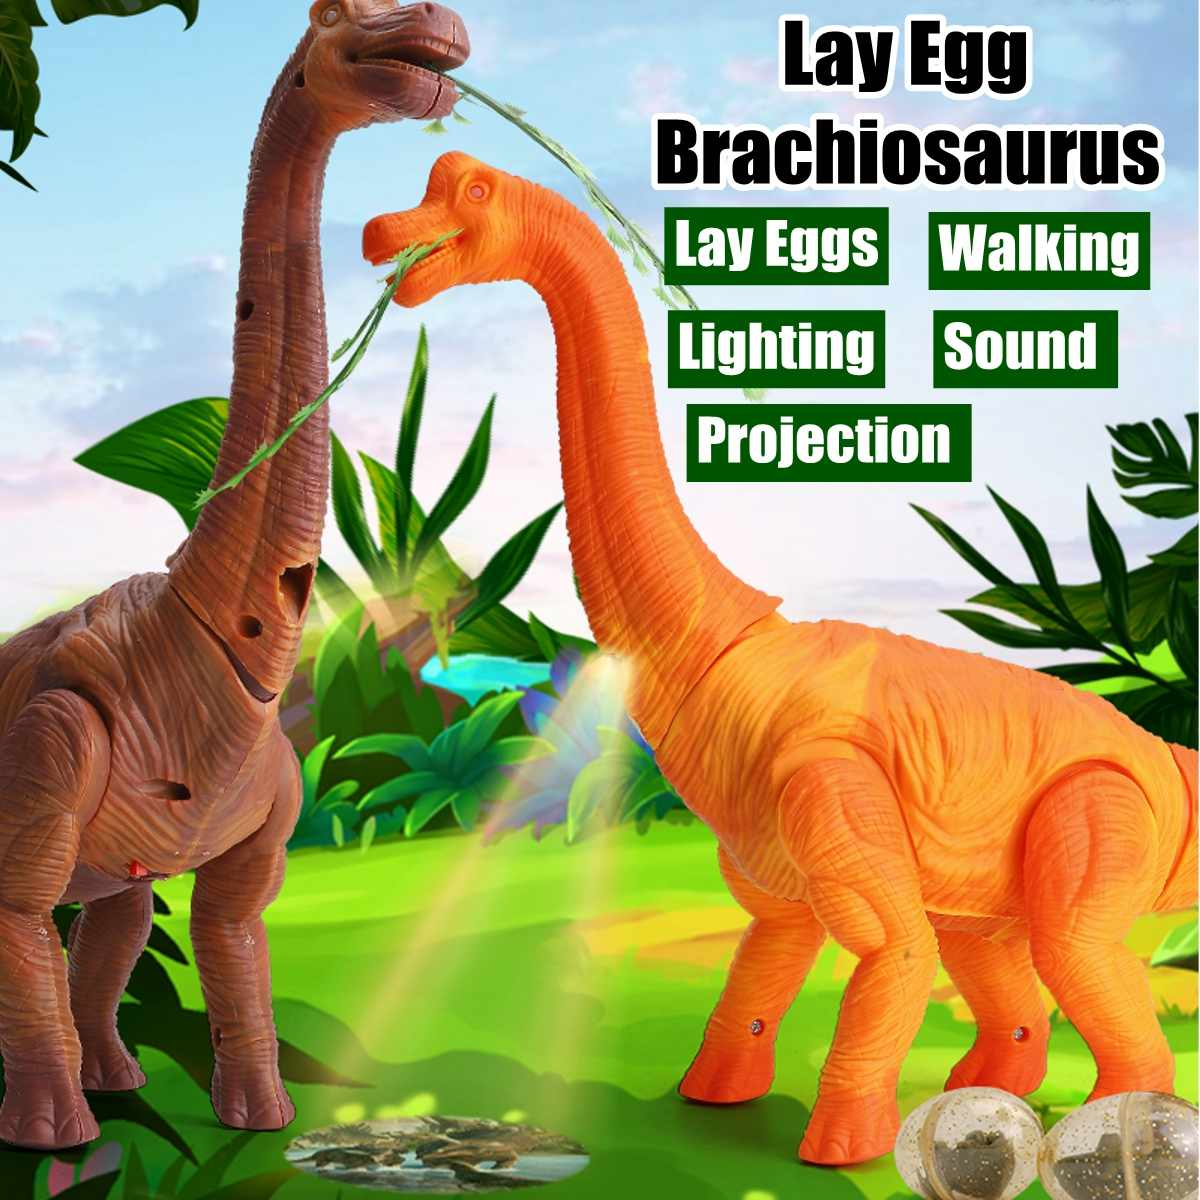 Electric Brachiosaurus Dinosaur With Action Figure Lamplight Drop Lay Eggs Light Sound Dinosaur Model Educational Toy Gifts